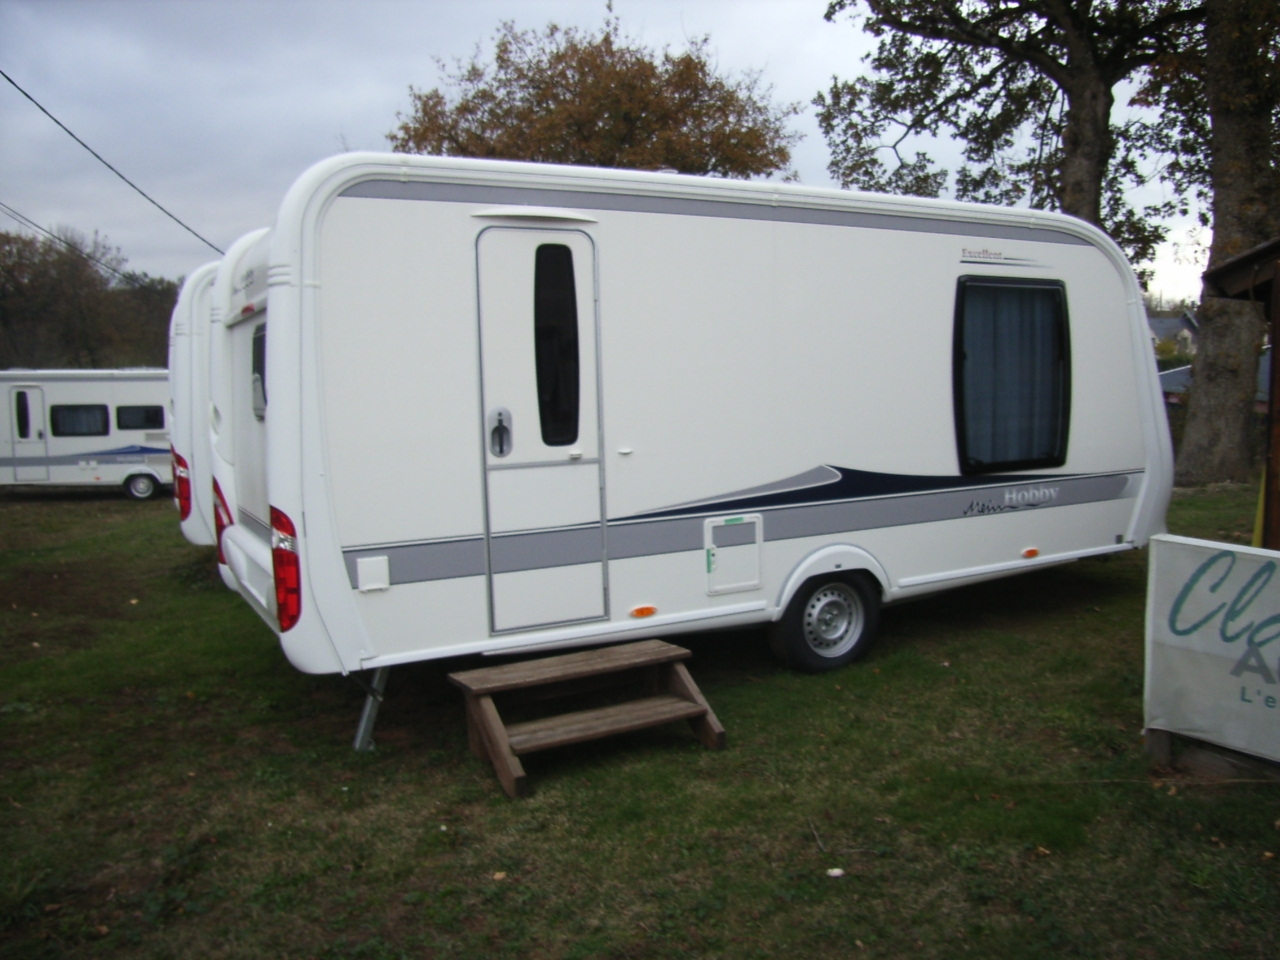 hobby 490 sff neuf caravane vendre en aveyron 12 ref 1231 net campers. Black Bedroom Furniture Sets. Home Design Ideas